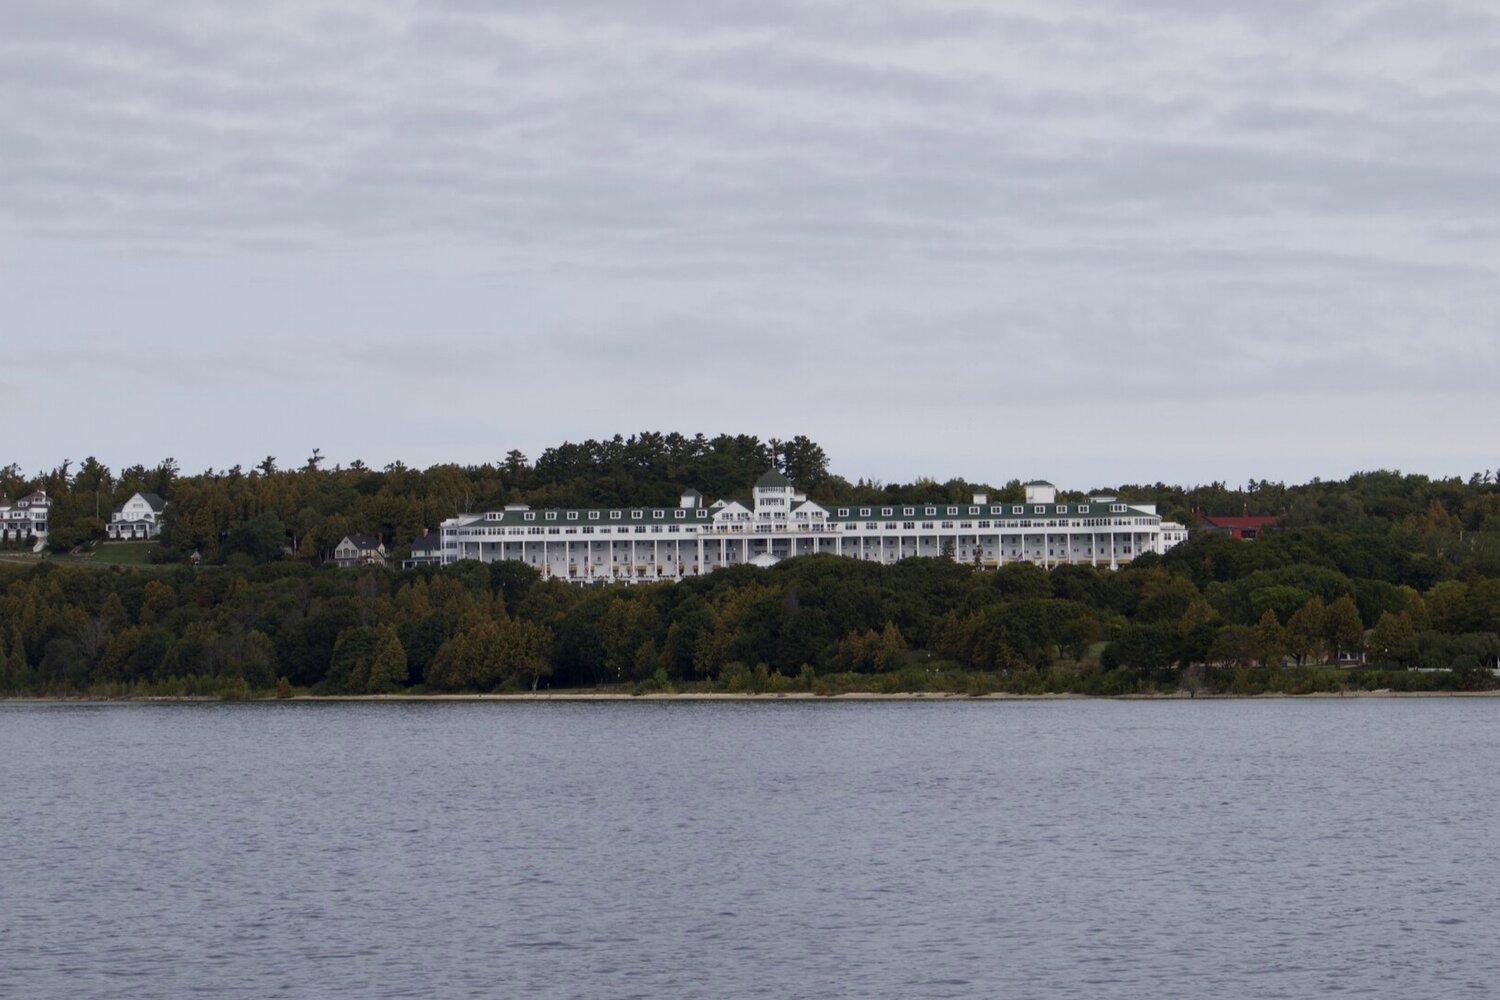 The Grand Hotel from Lake Huron. The movie Somewhere in Time staring Jane Seymour and Christopher Reeve was filmed at the hotel in 1980.